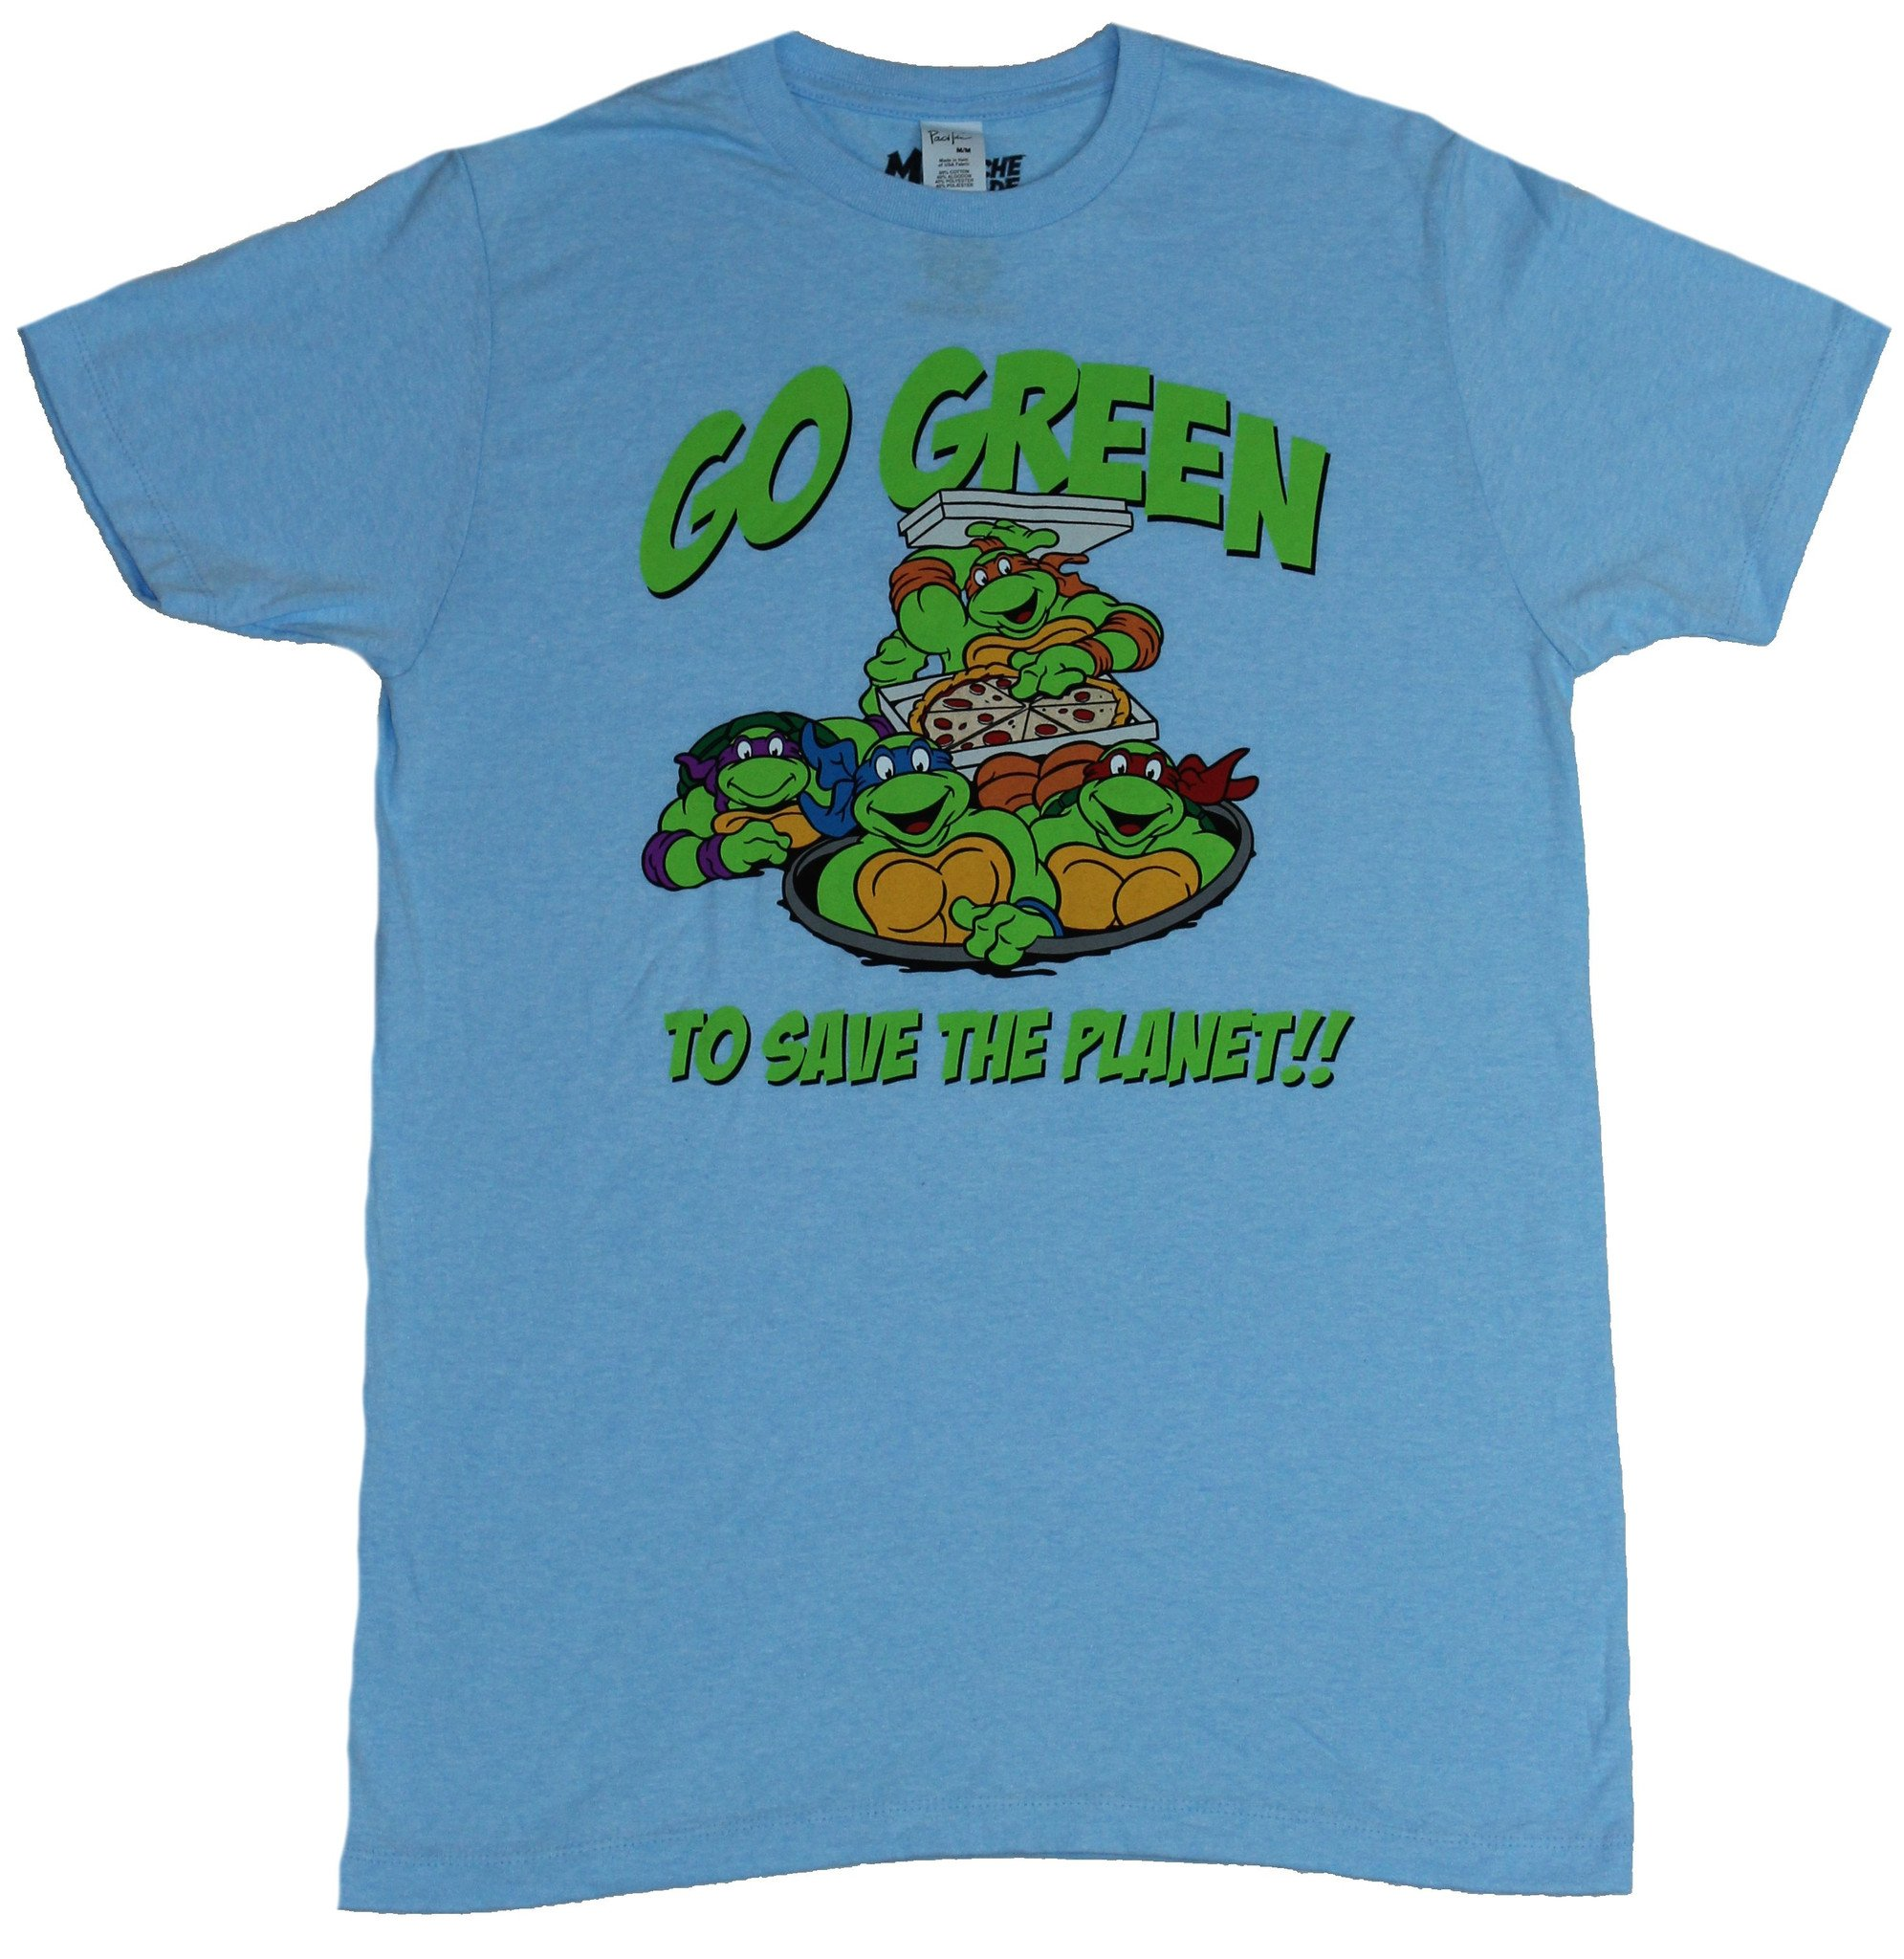 Teenage Mutant Ninja Turtles Mens T-Shirt - Go Green To Save The planet